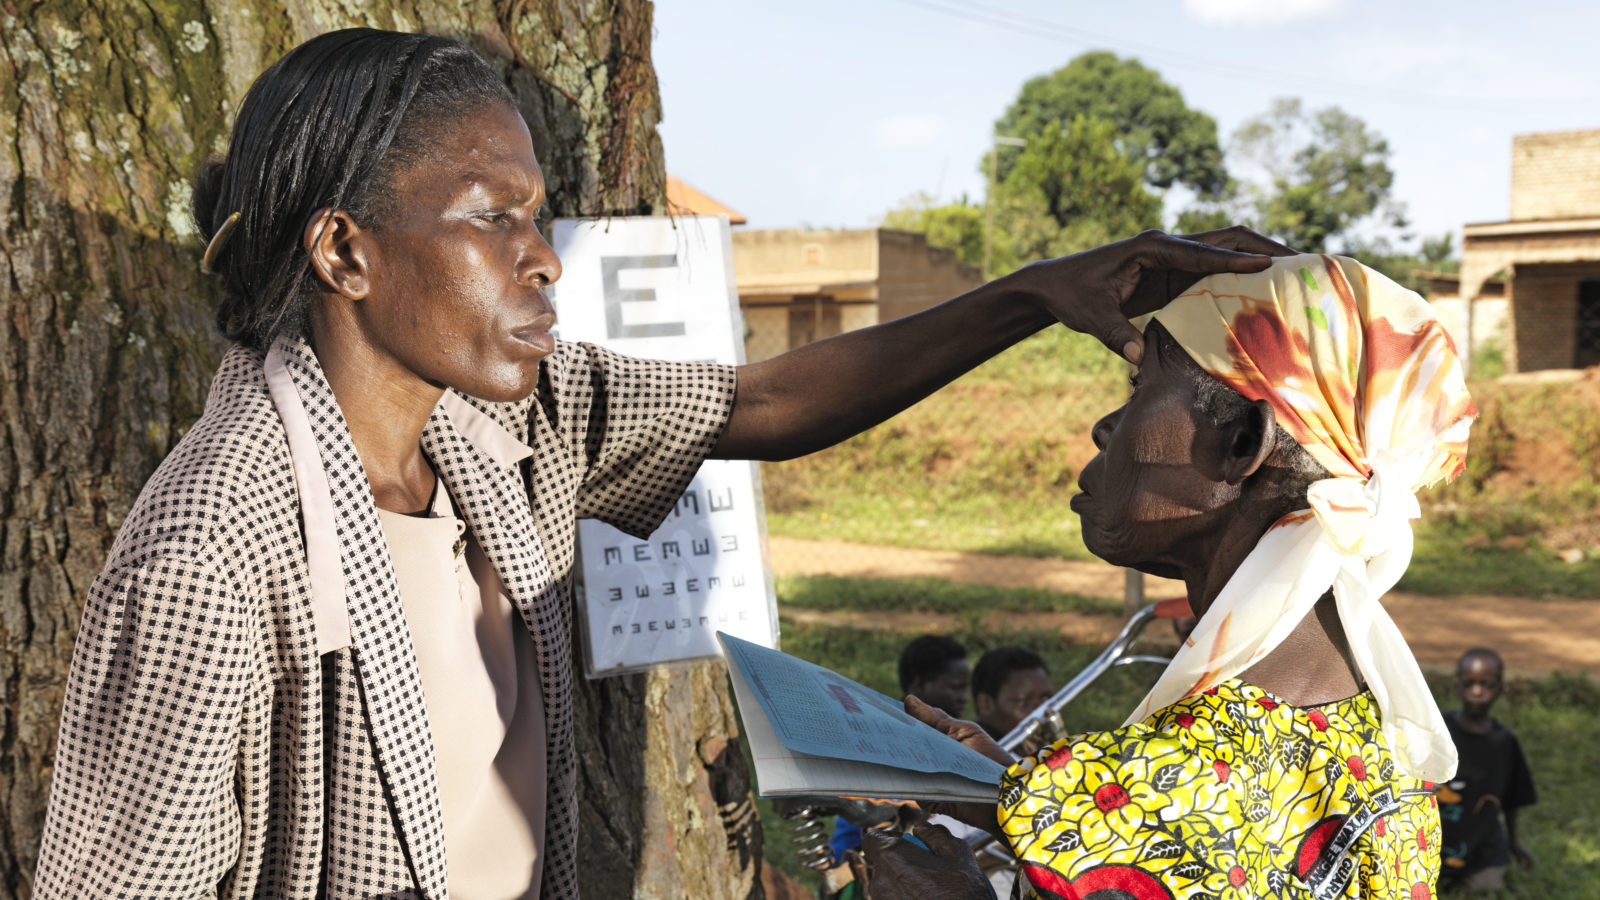 A health worker in Uganda tests a woman's eyes as part of a trachoma outreach camp.